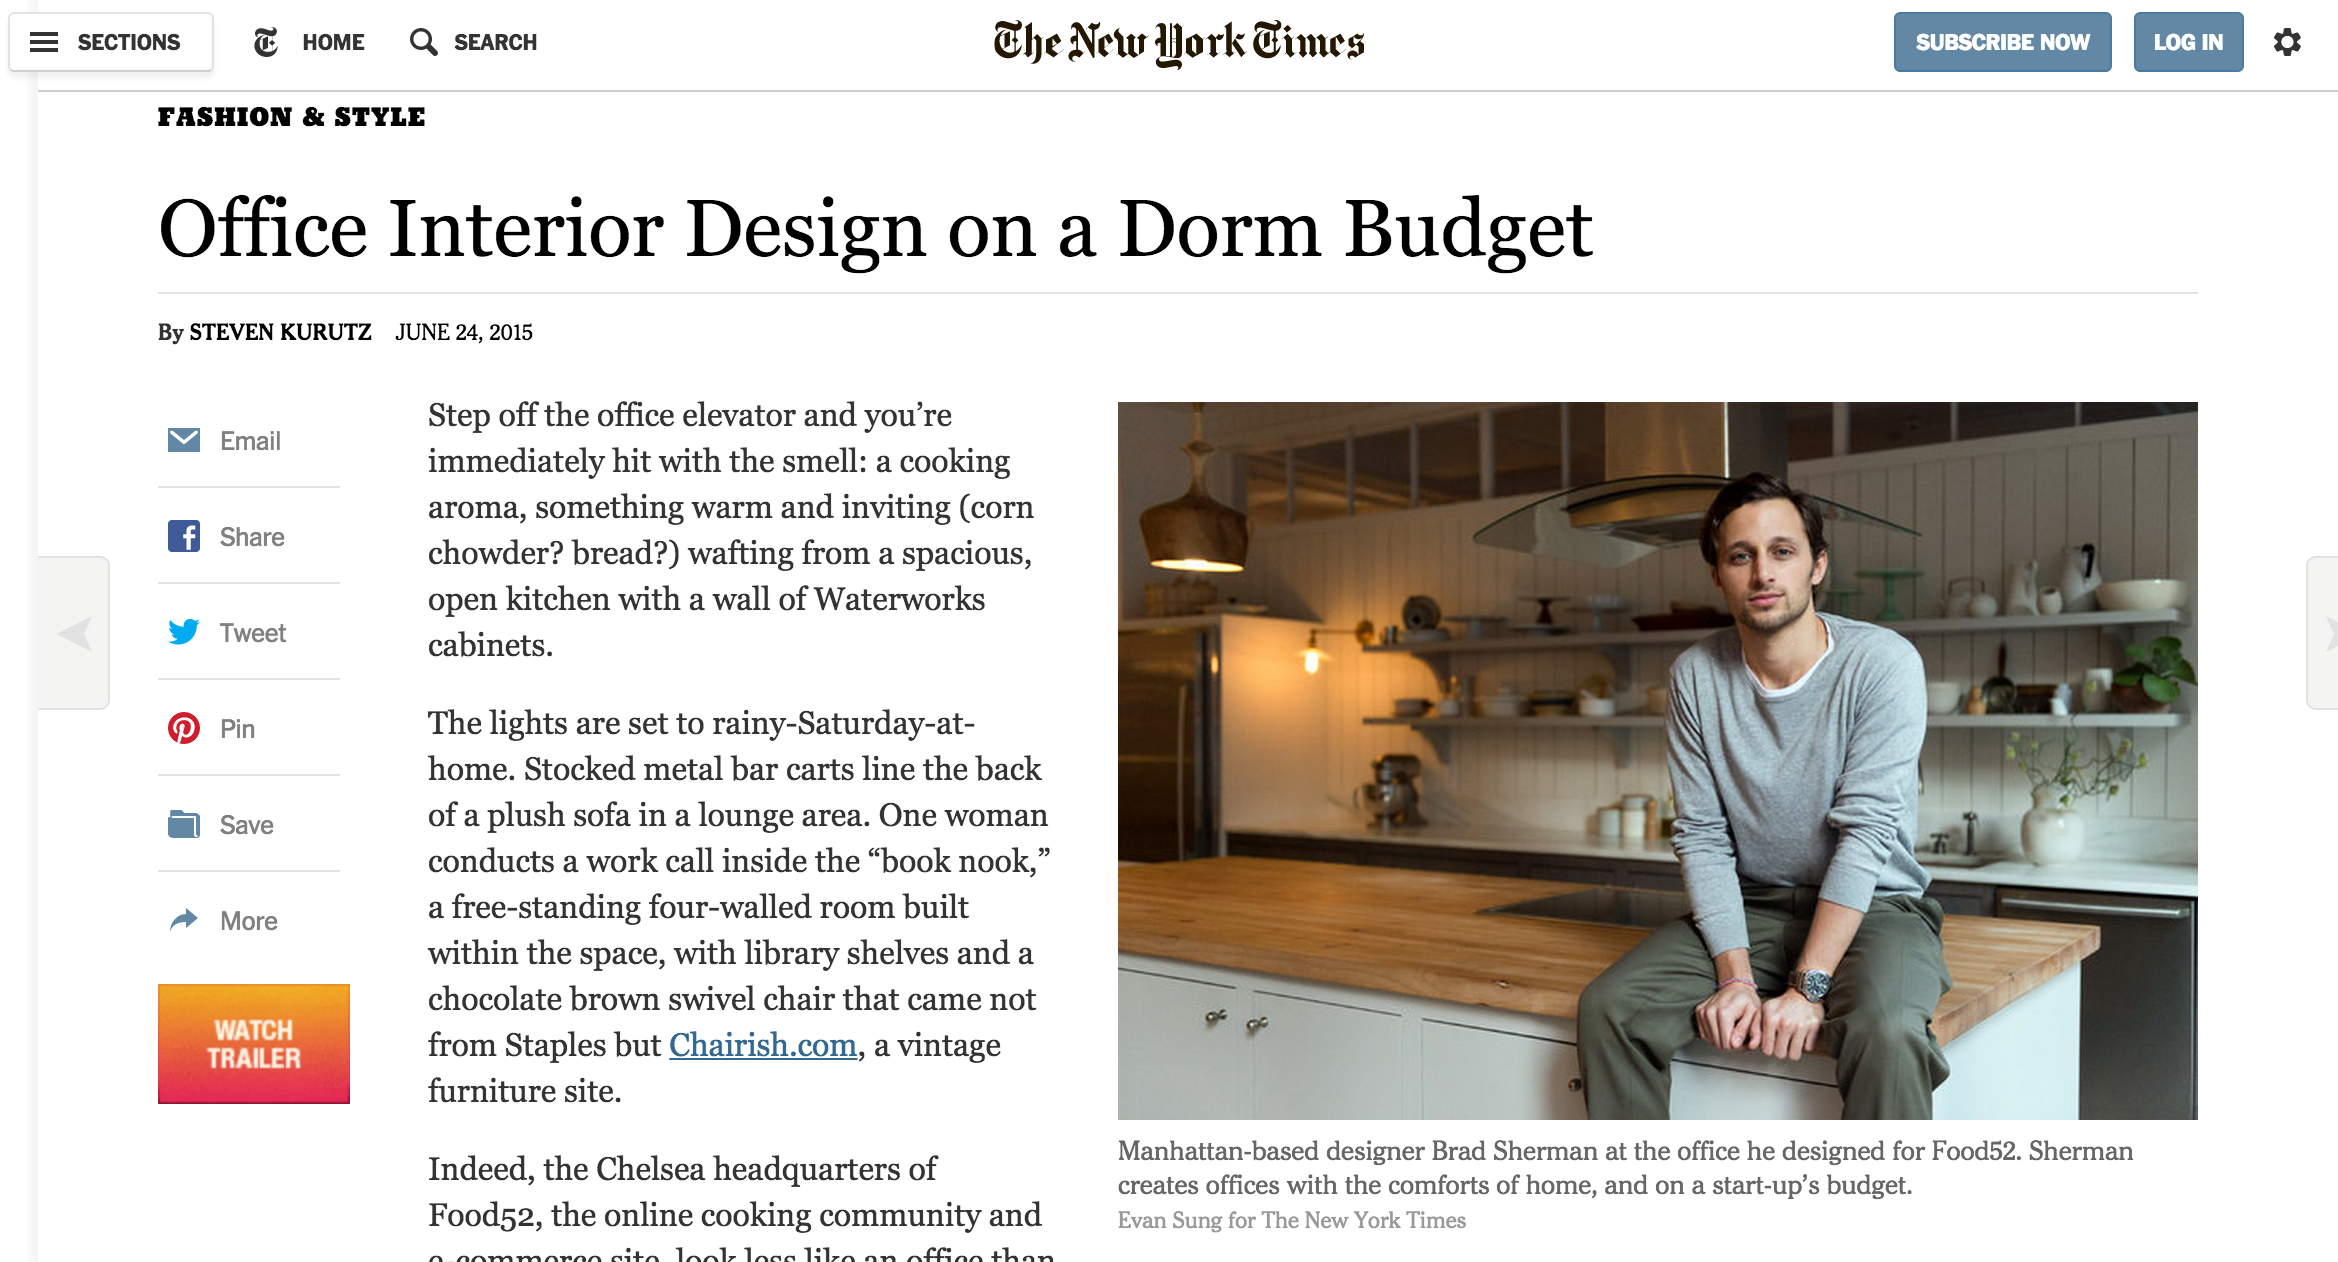 THE NEW YORK TIMES, JUNE 2015